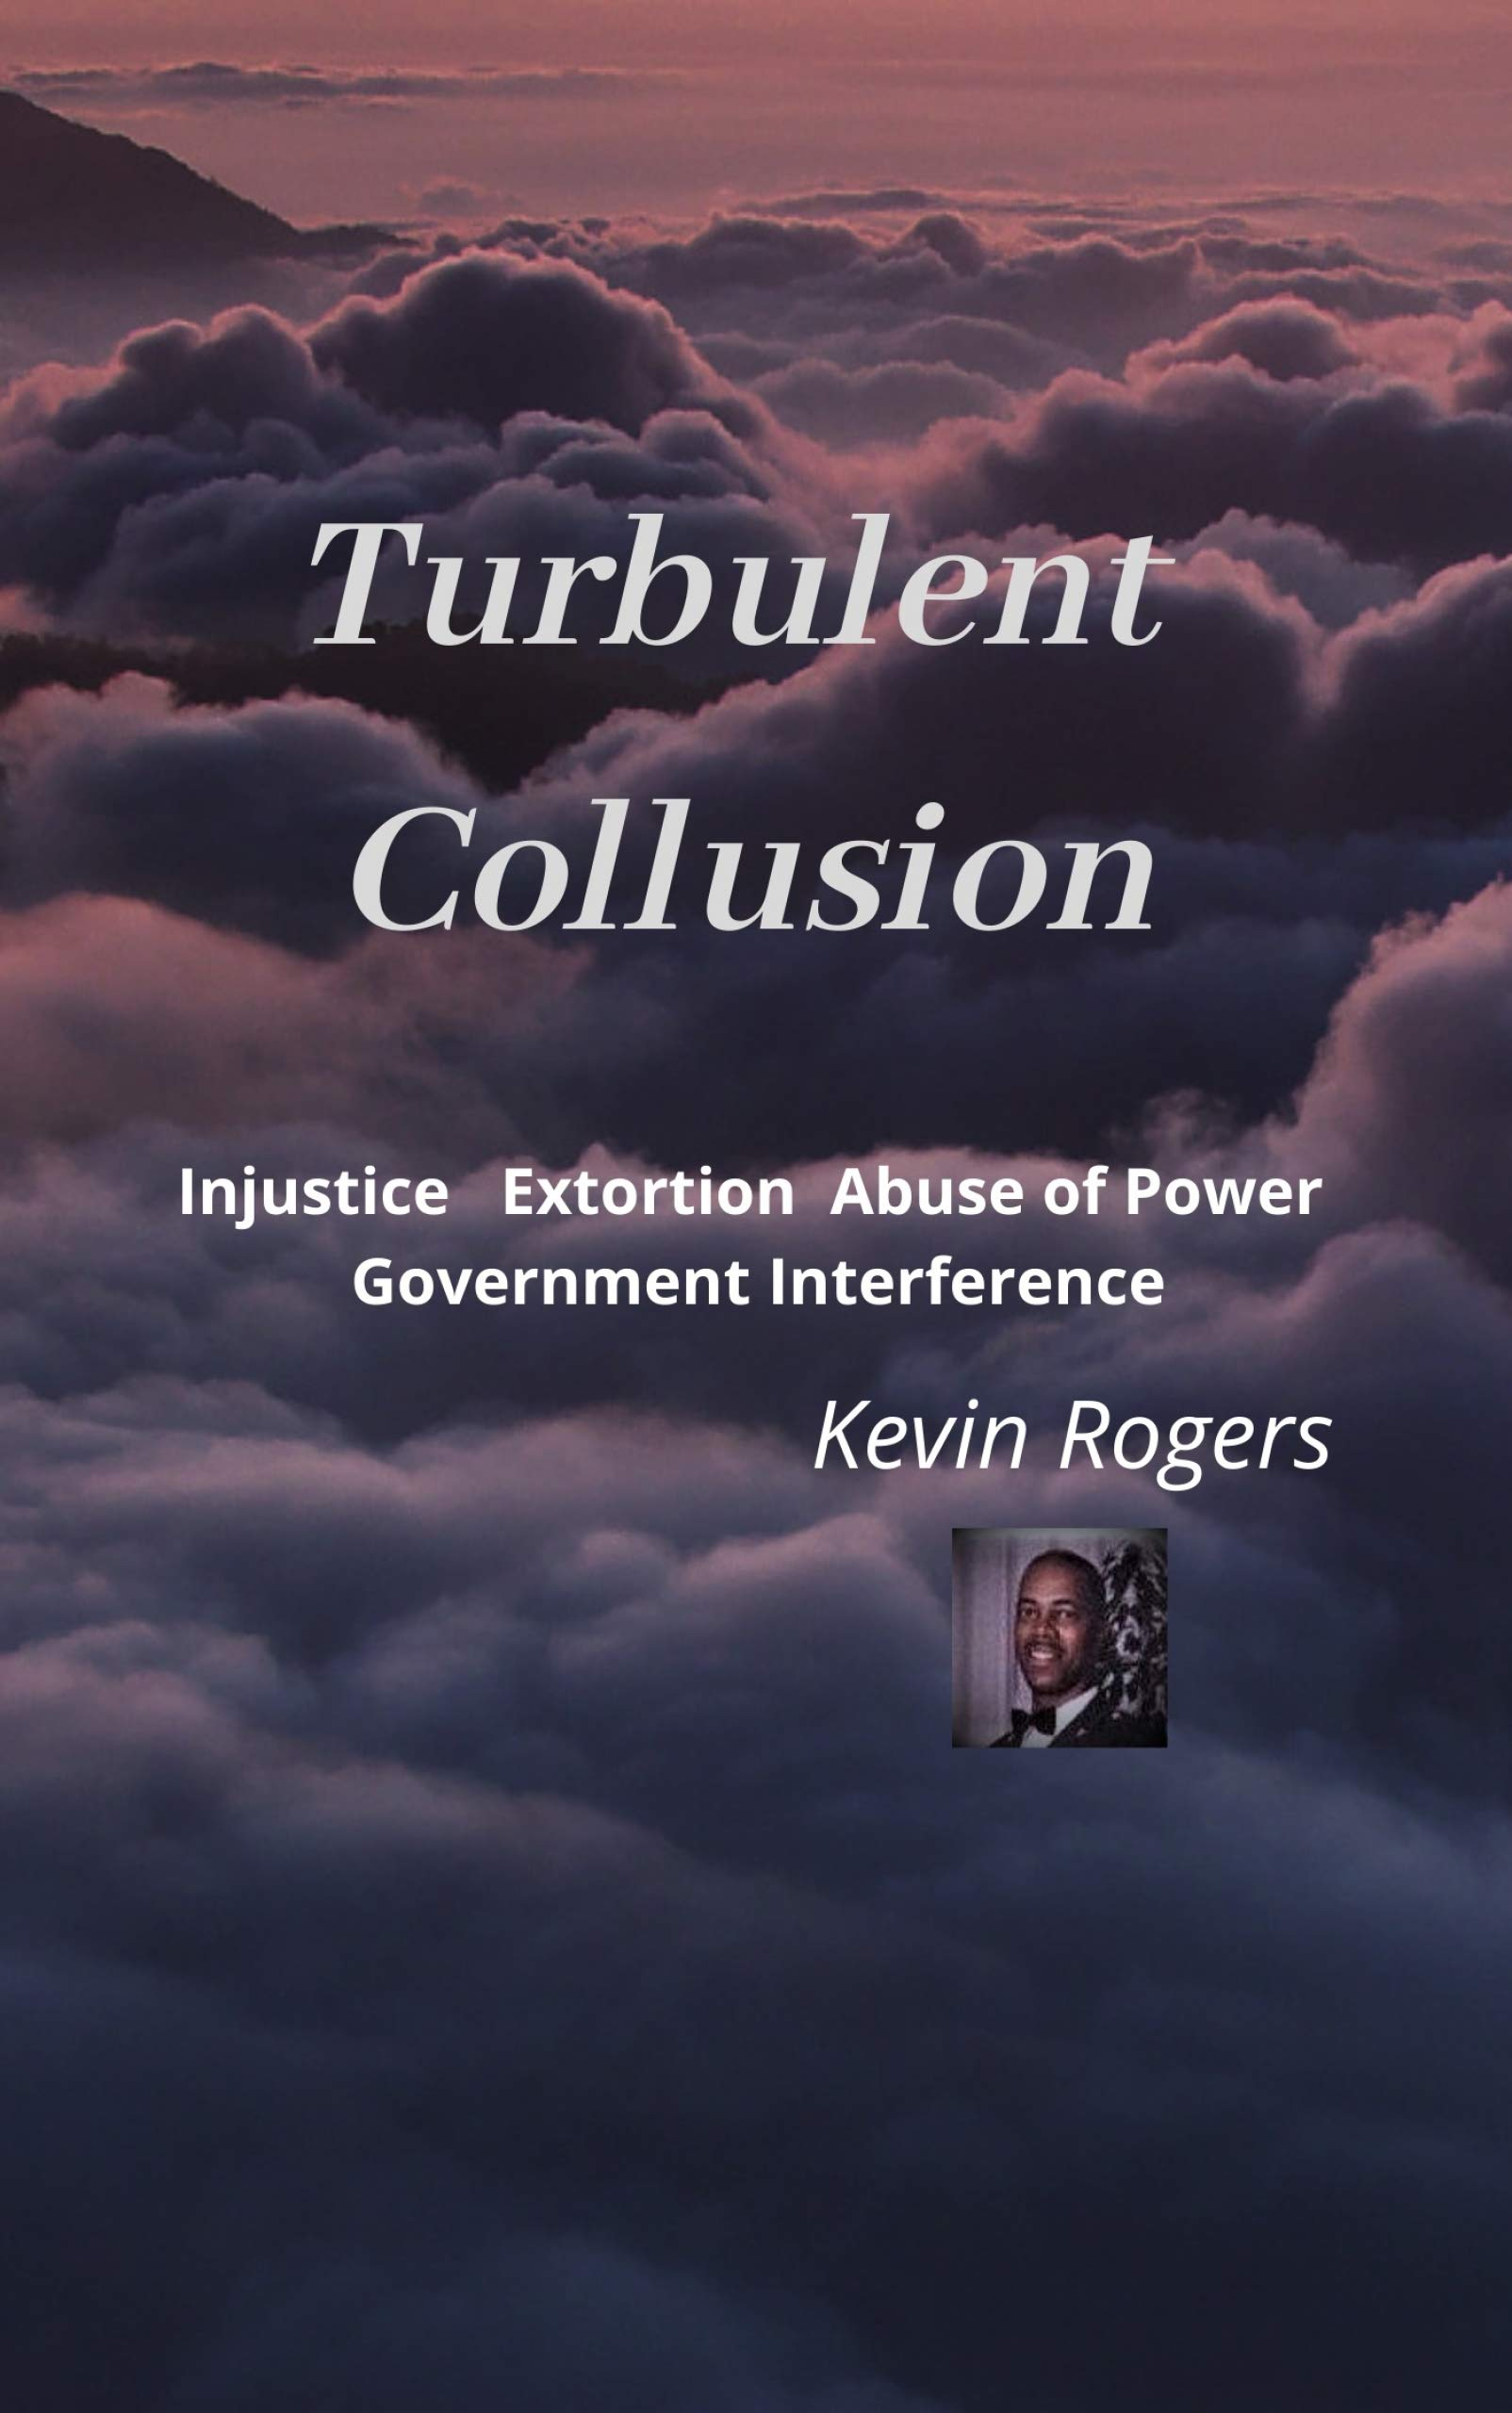 Turbulent Collusion: Injustice Extortion Abuse of Power